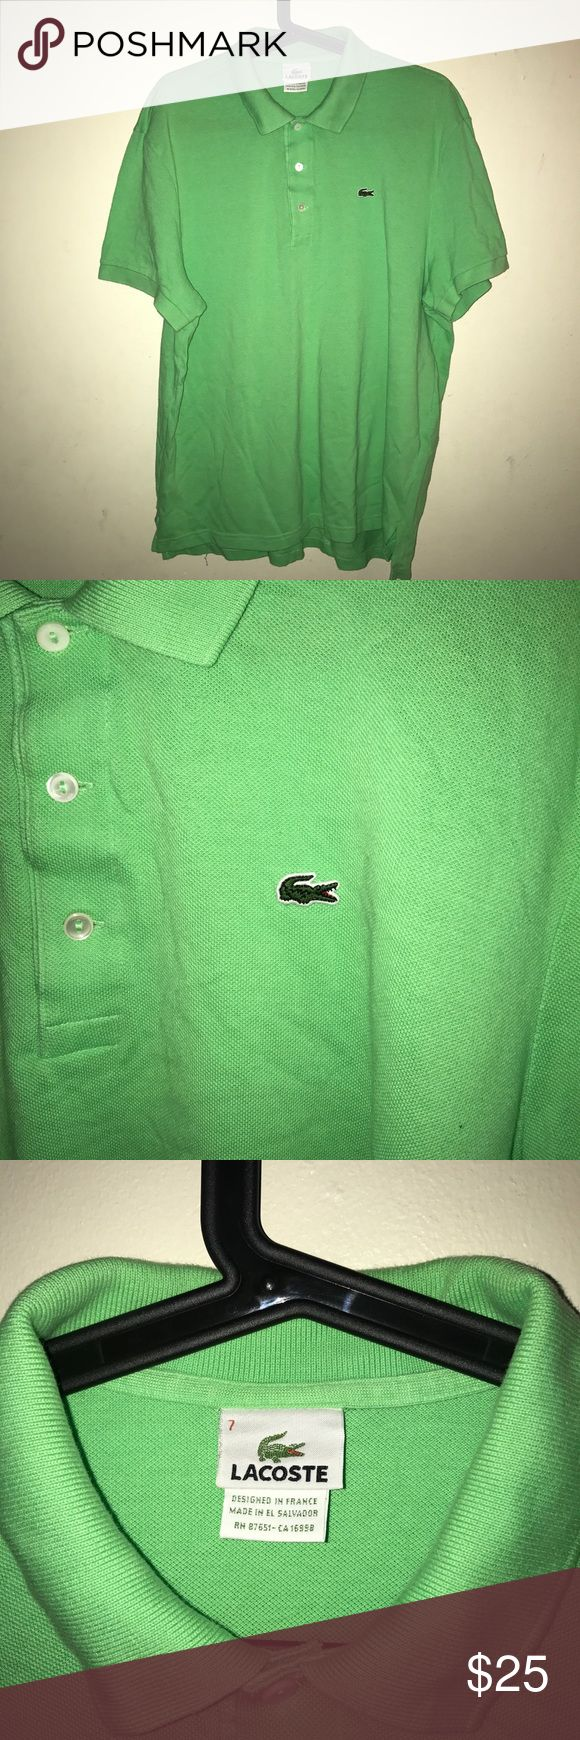 Lacoste polo shirt Lacoste polo shirt in great condition Lacoste Shirts Polos